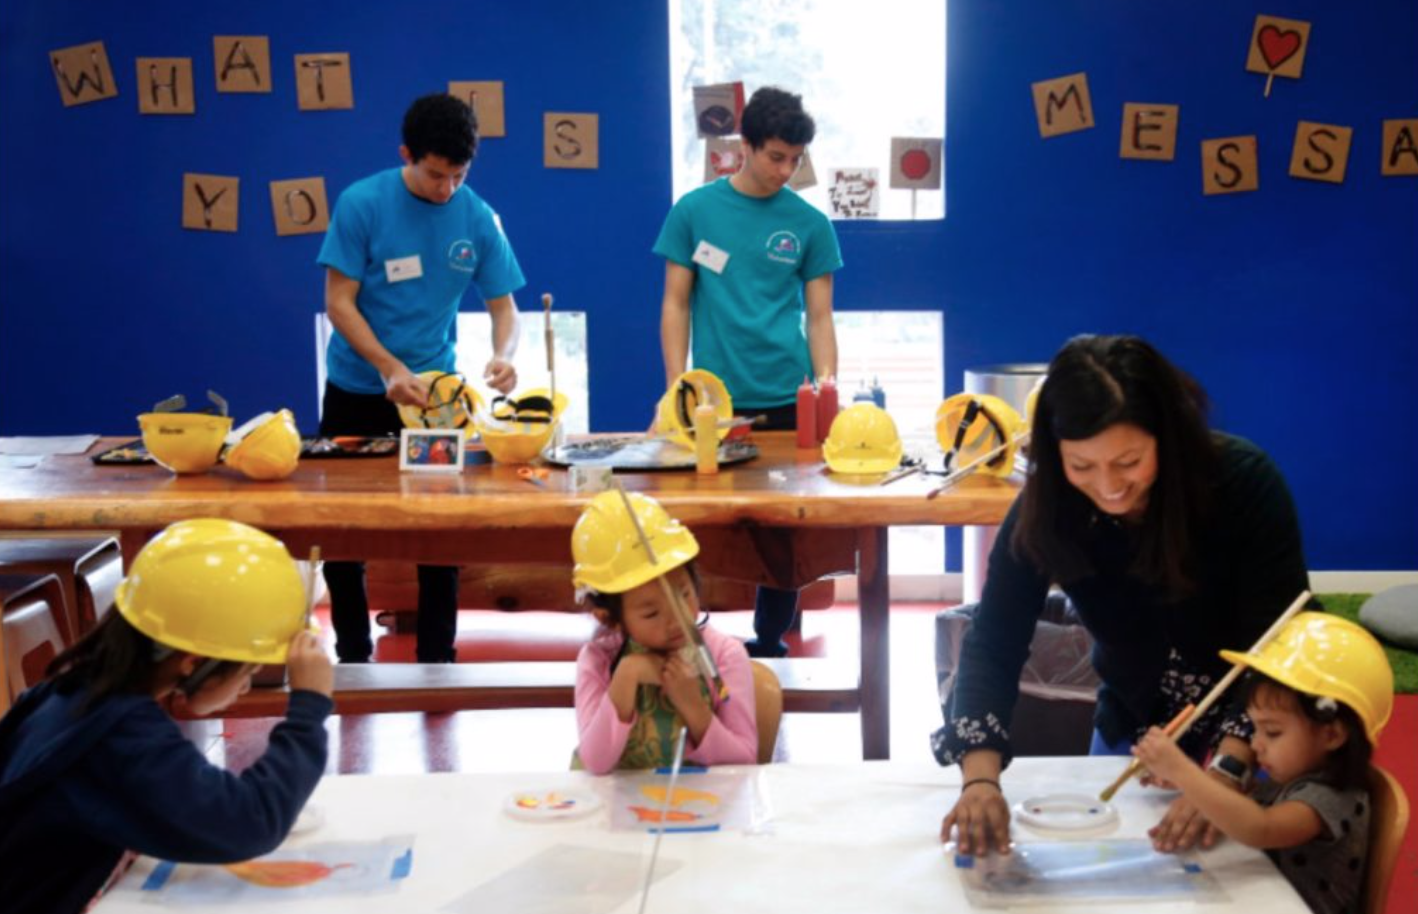 Children try painting like artist Donald Ryker Hard Hat painter